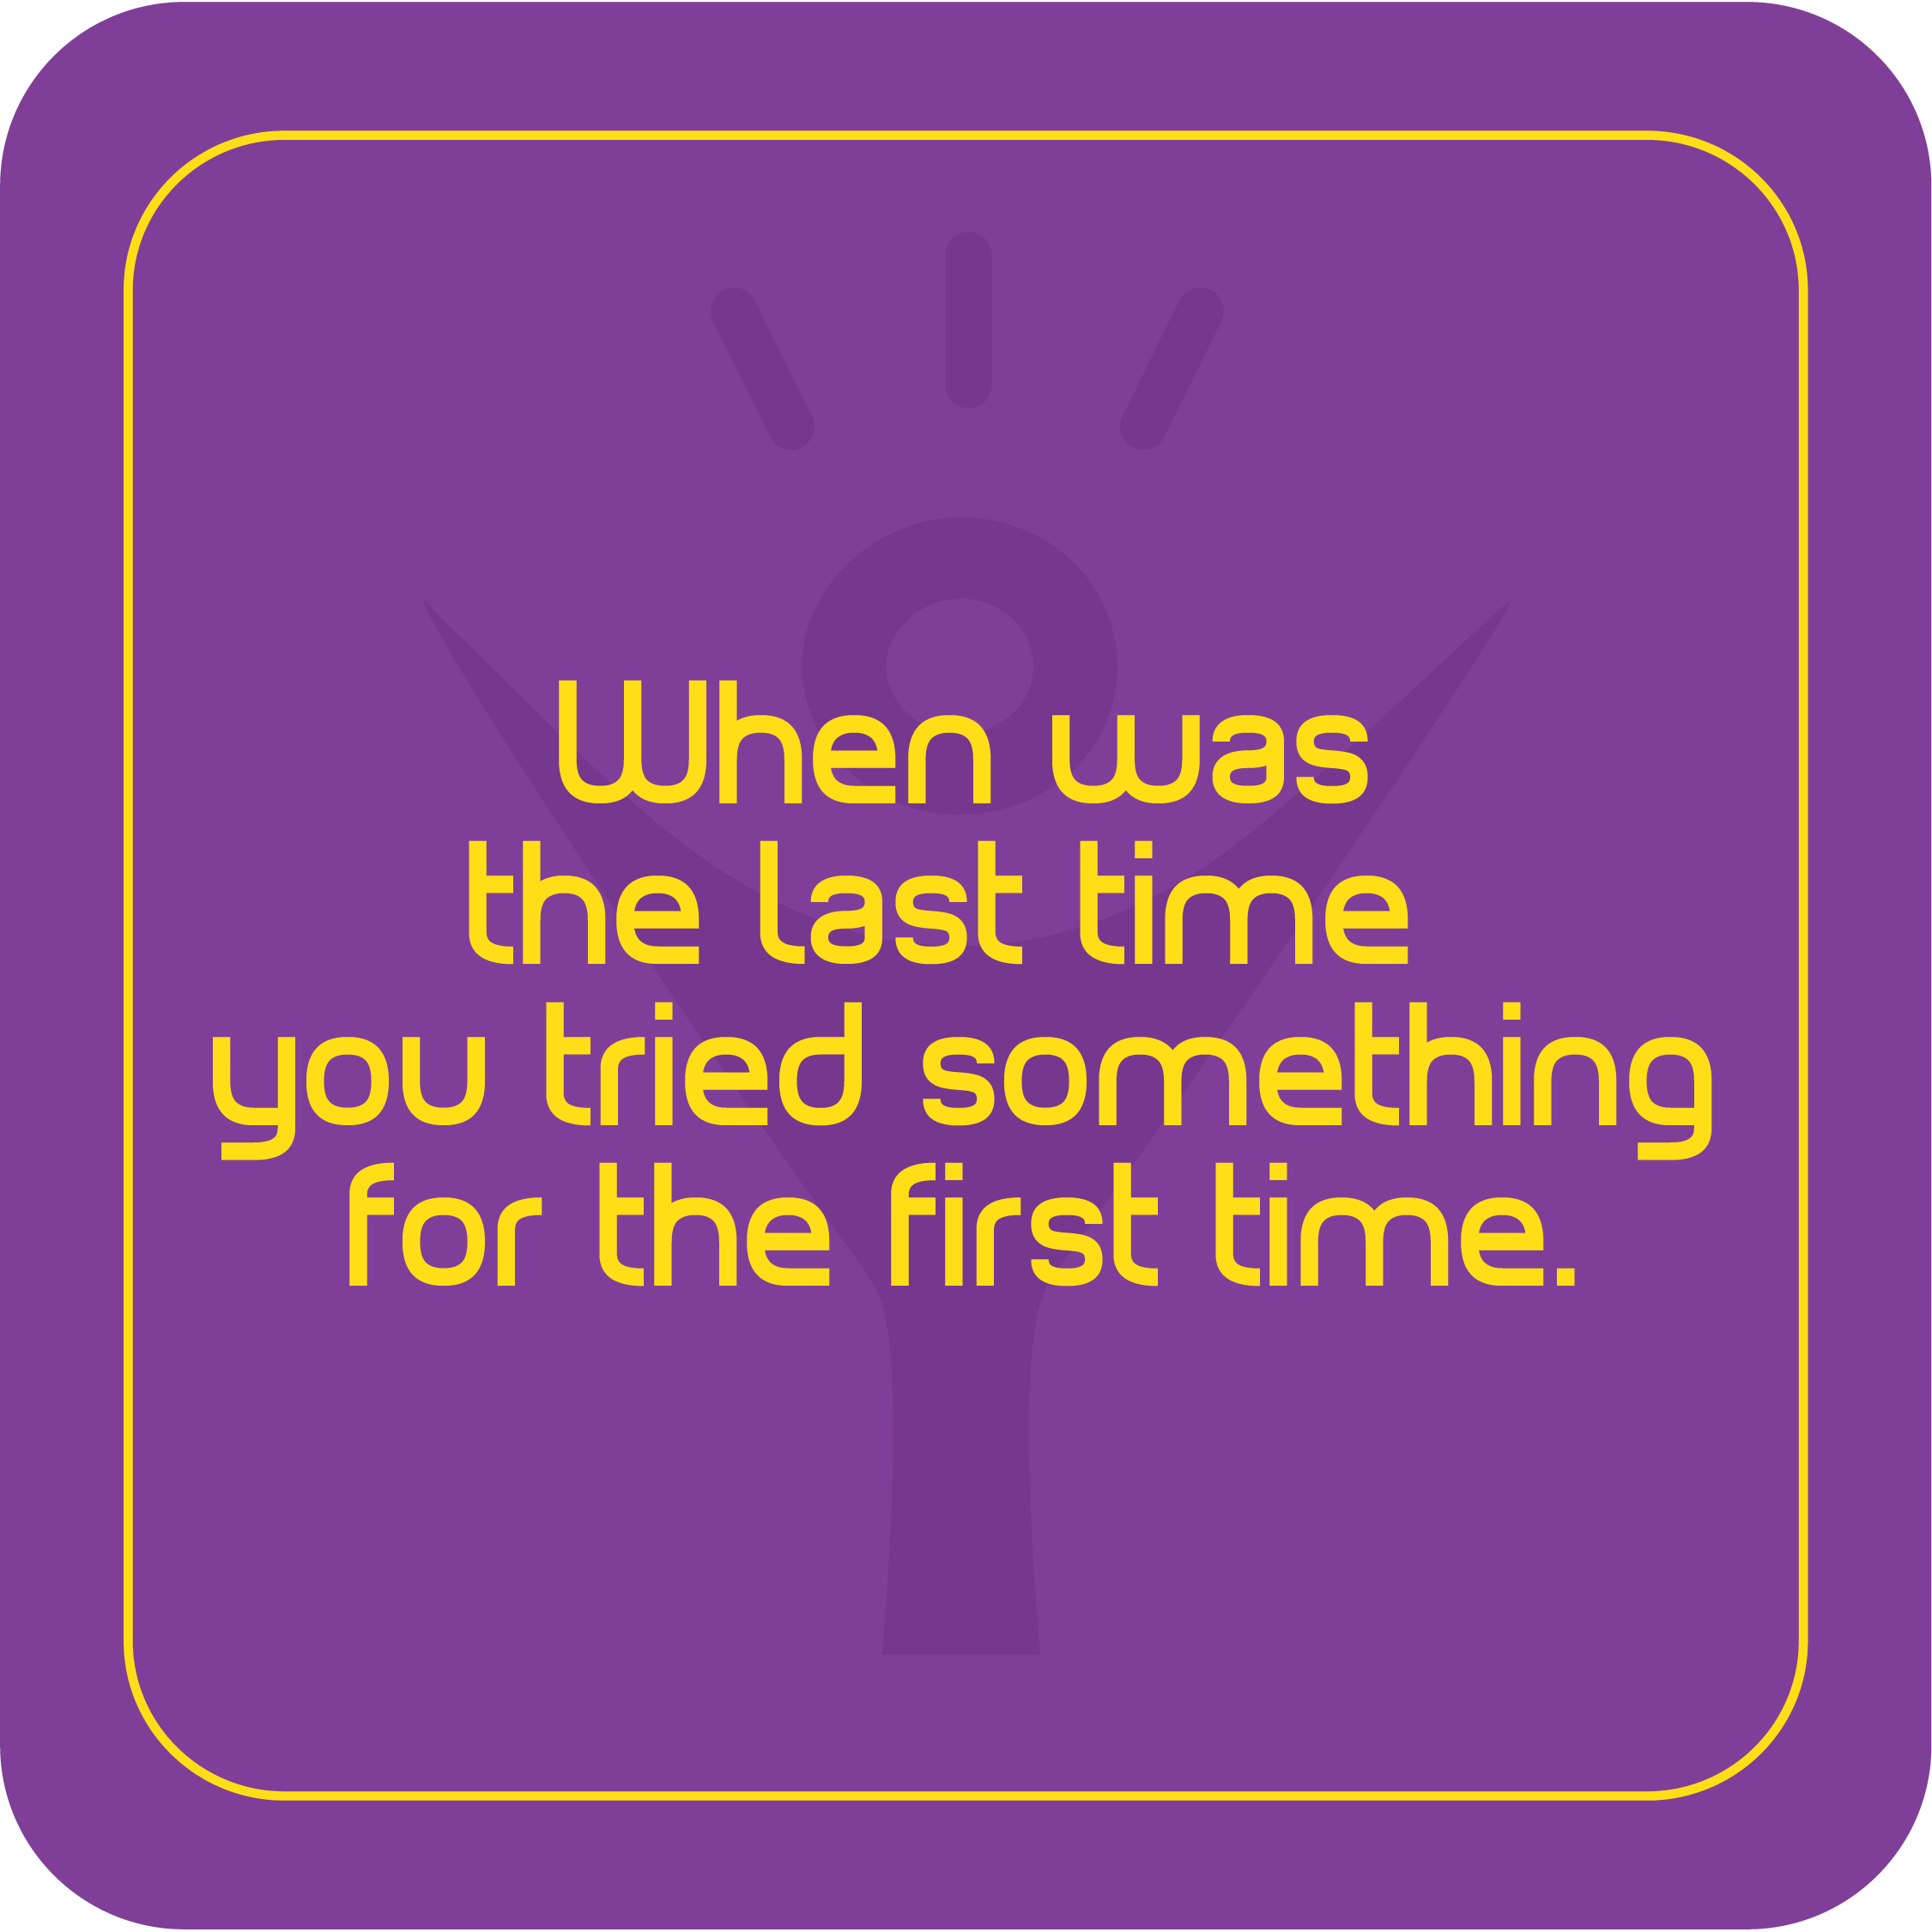 fi UJhen was the Last time gou tried something for the first time. % https://inspirational.ly